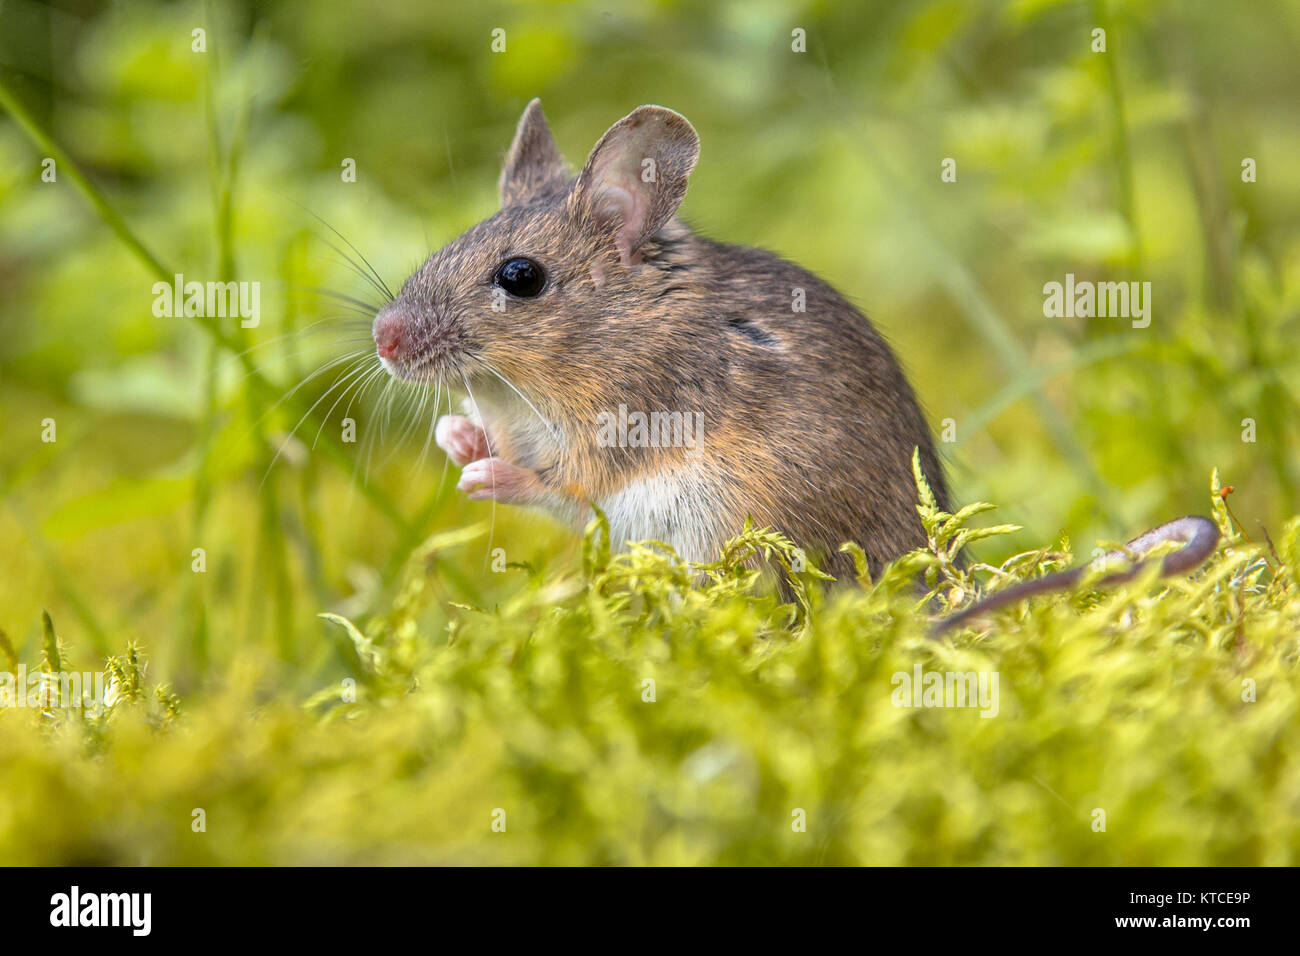 Cute wild Wood mouse (Apodemus sylvaticus) in green moss natural environment and looking in the camera - Stock Image